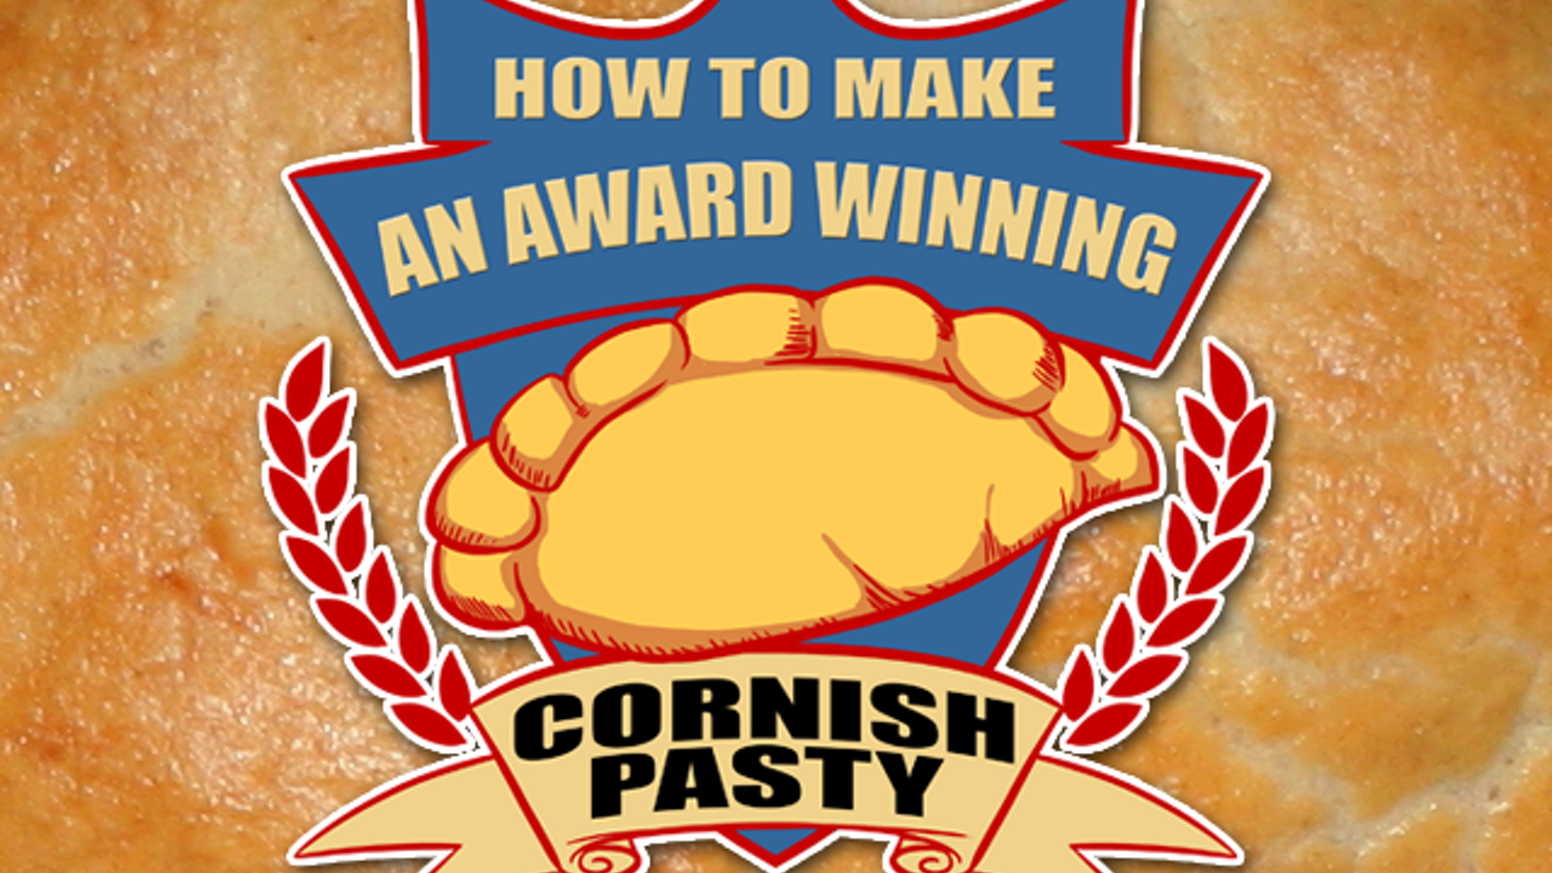 World Pasty Champion shares his recipes, tips and techniques in a new book, packed with history, recipes and more...